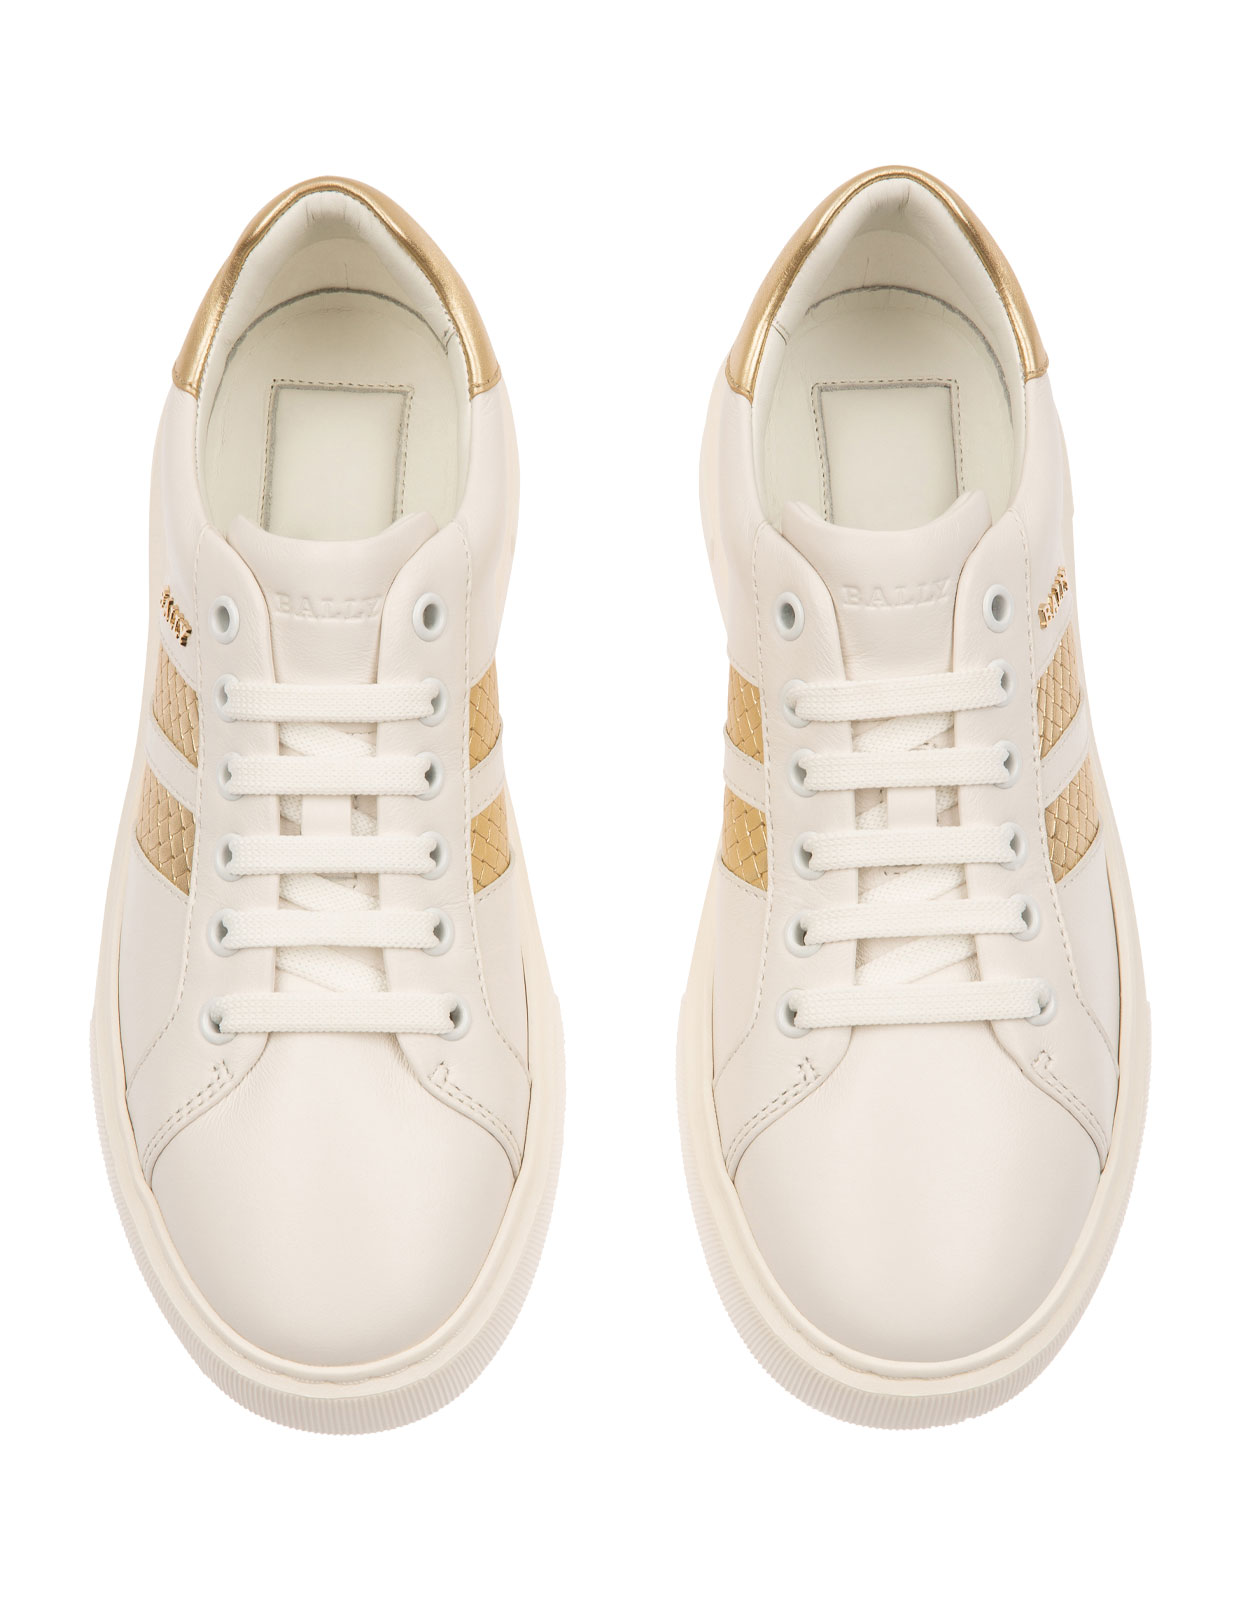 Marcus iconic stripe sneakers White / Platino